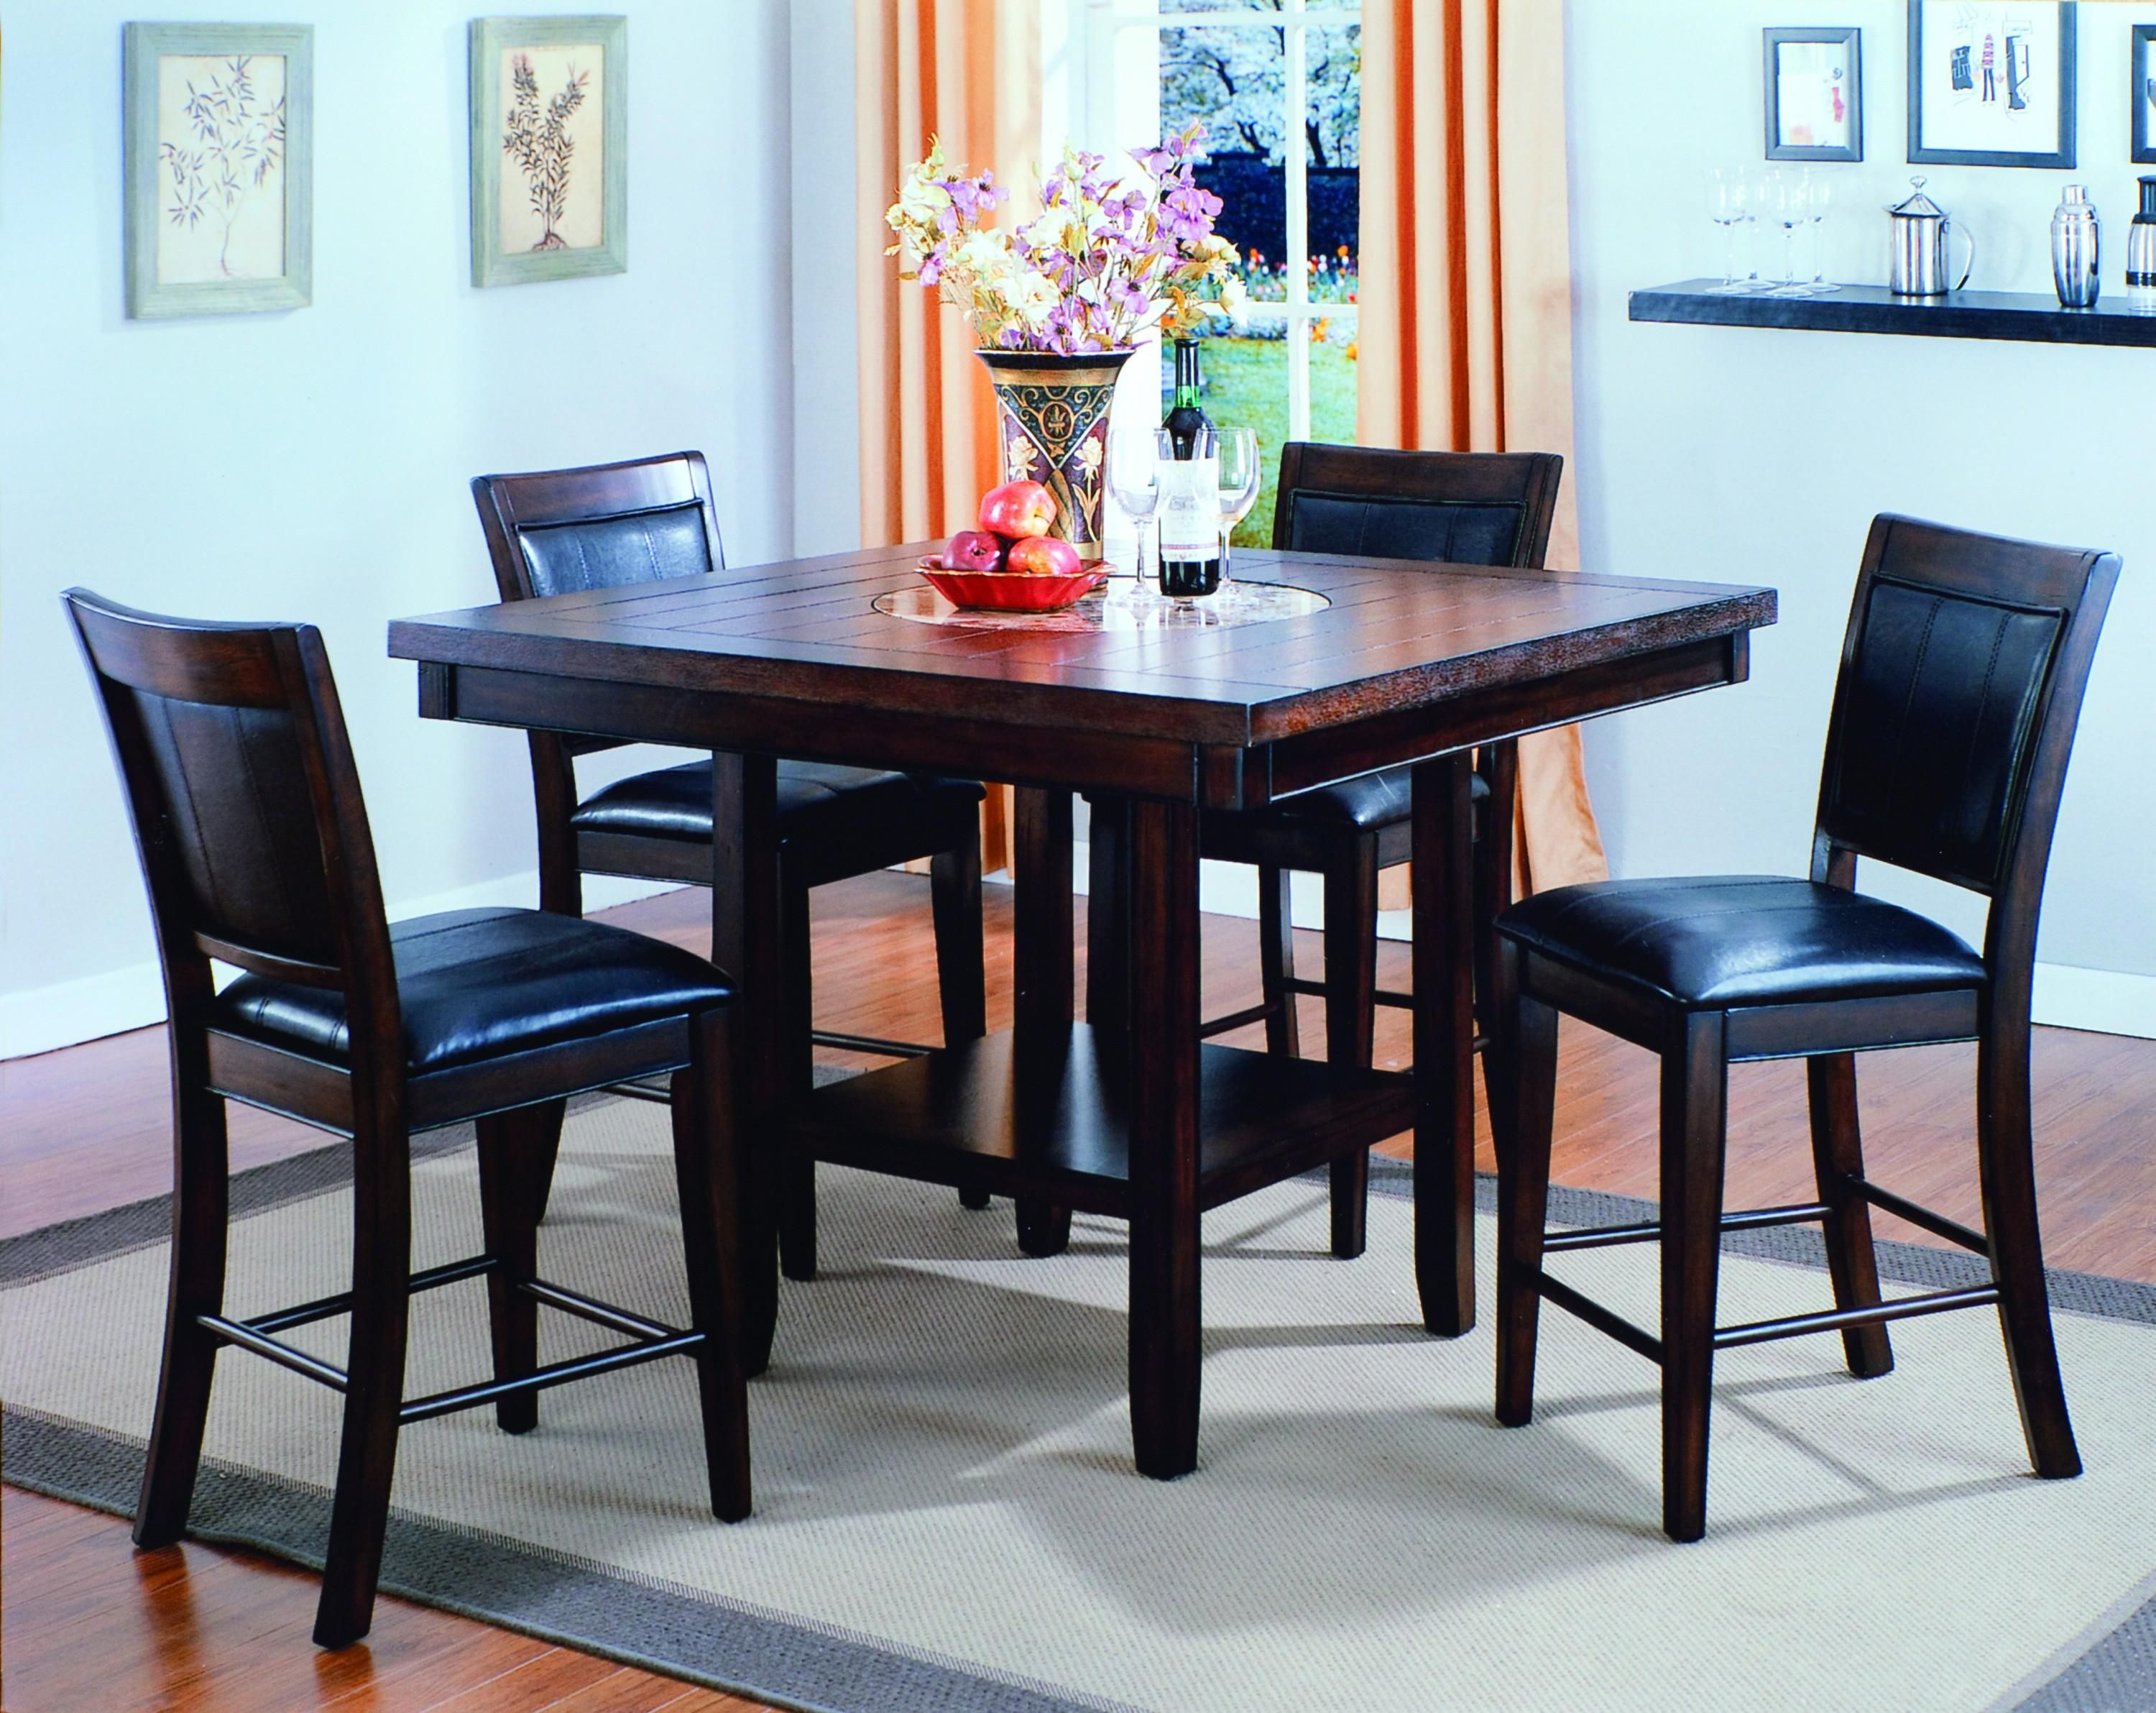 Explore 5 Piece Dining Set, Dining Room Sets, And More!